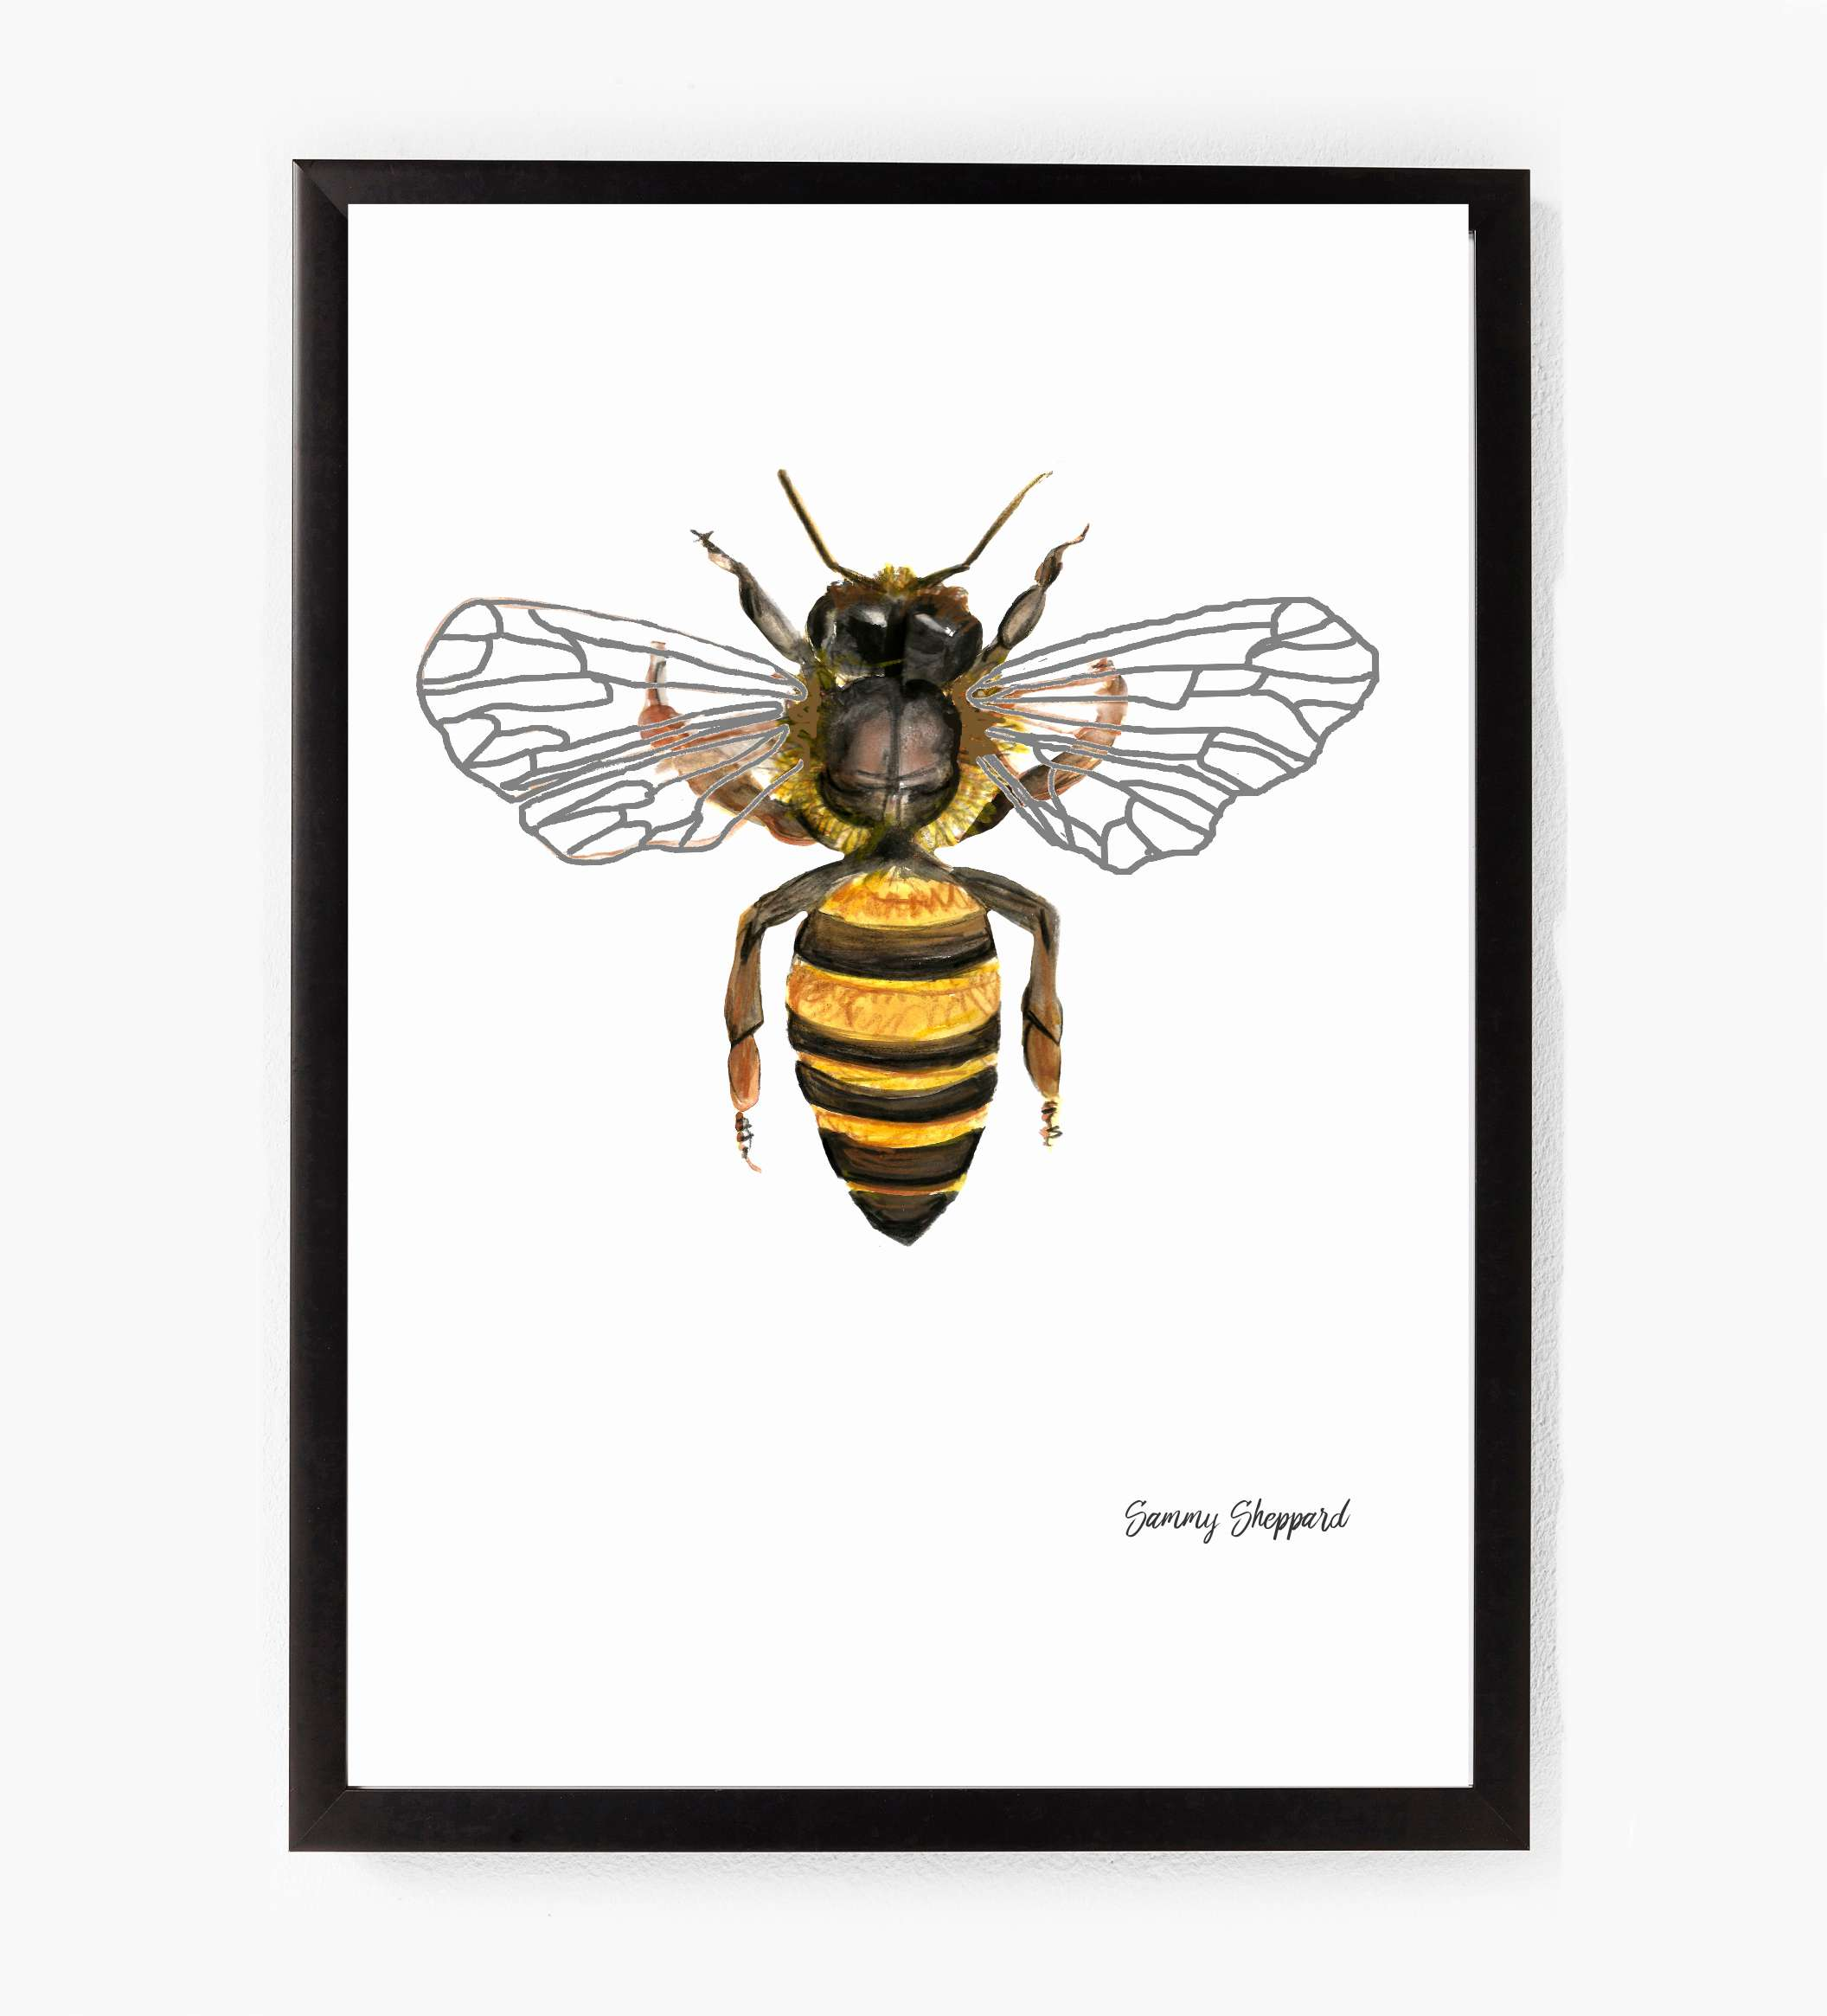 This beautiful hand illustrated Bee print by Sammy Sheppard is simple and will add some magic to your wall.